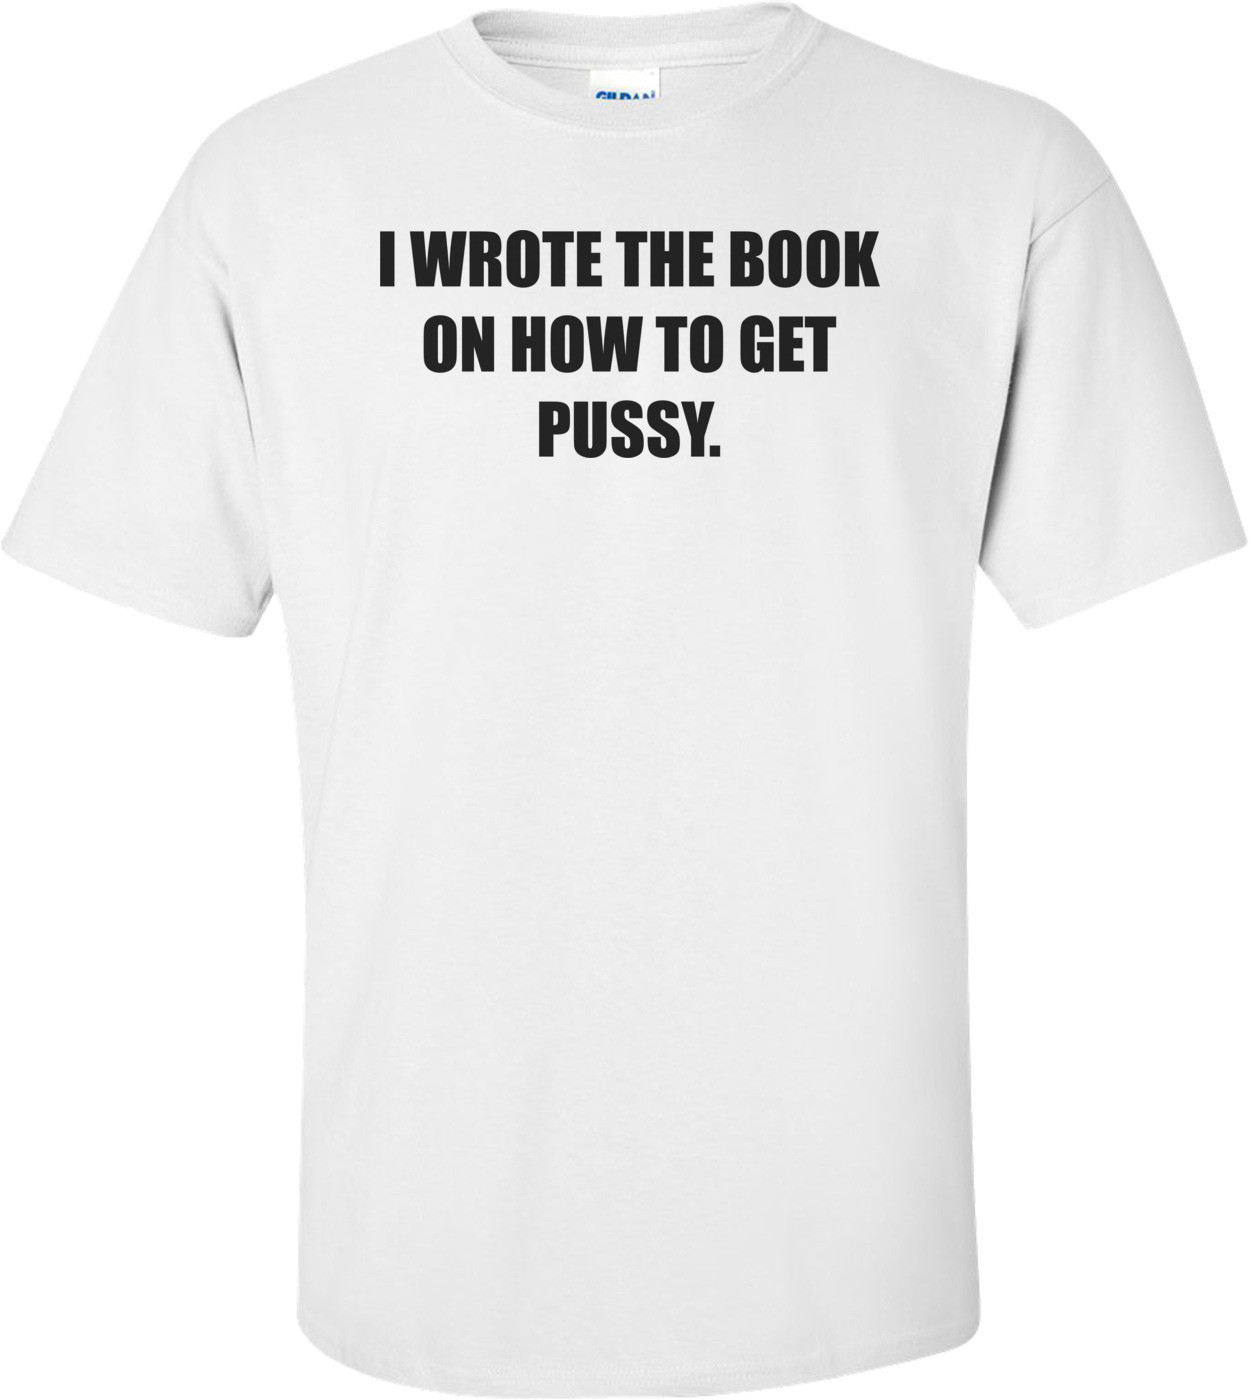 I WROTE THE BOOK ON HOW TO GET PUSSY. Shirt